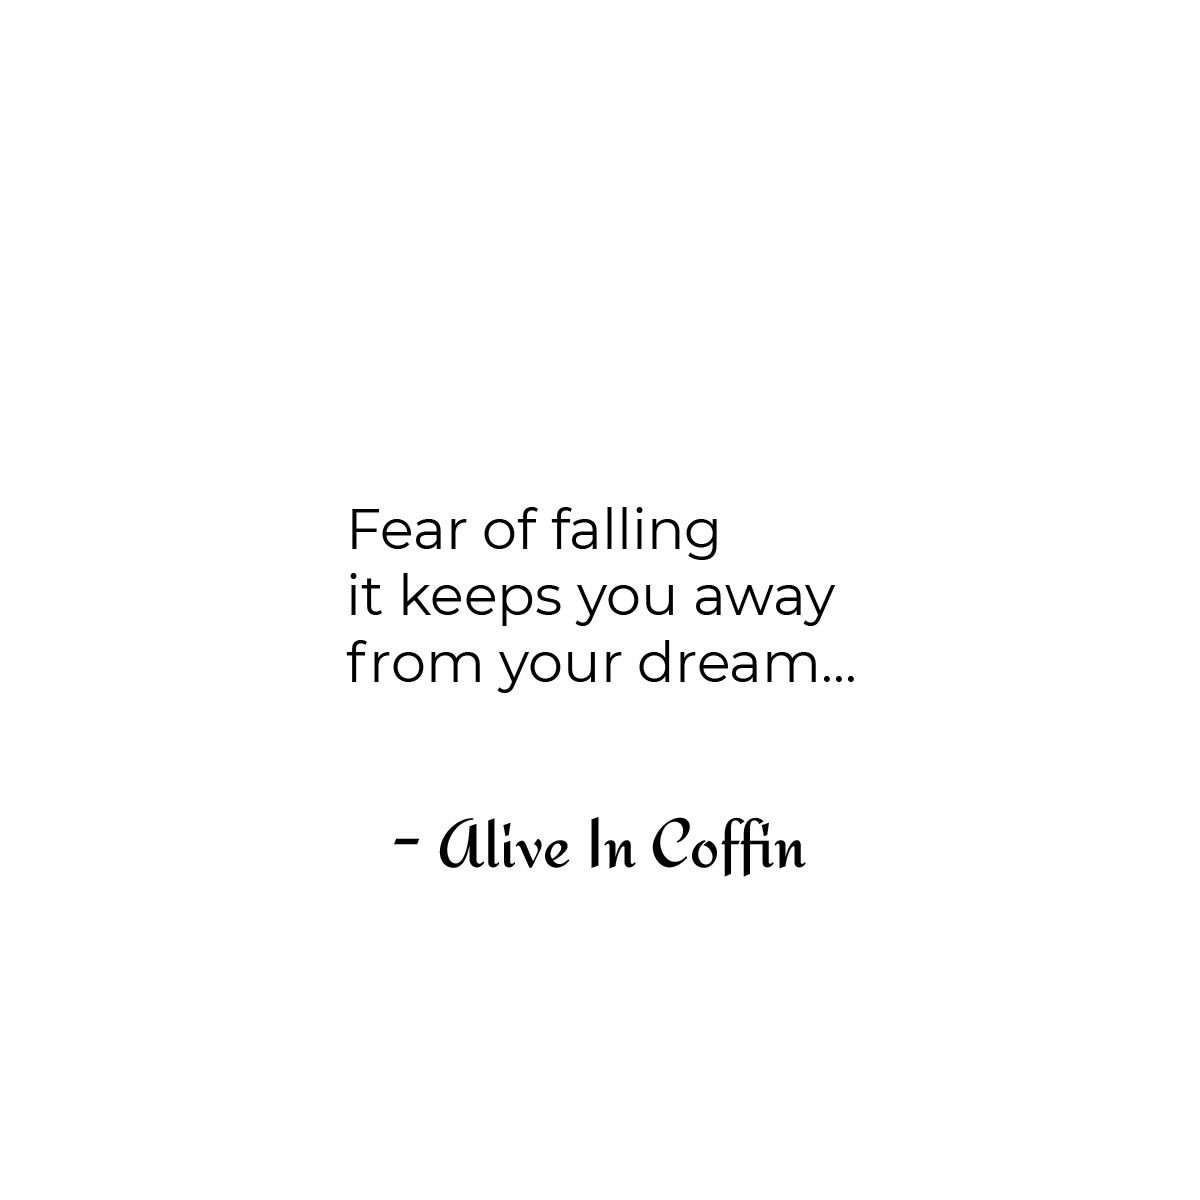 Short motivational poem about the fear of falling.